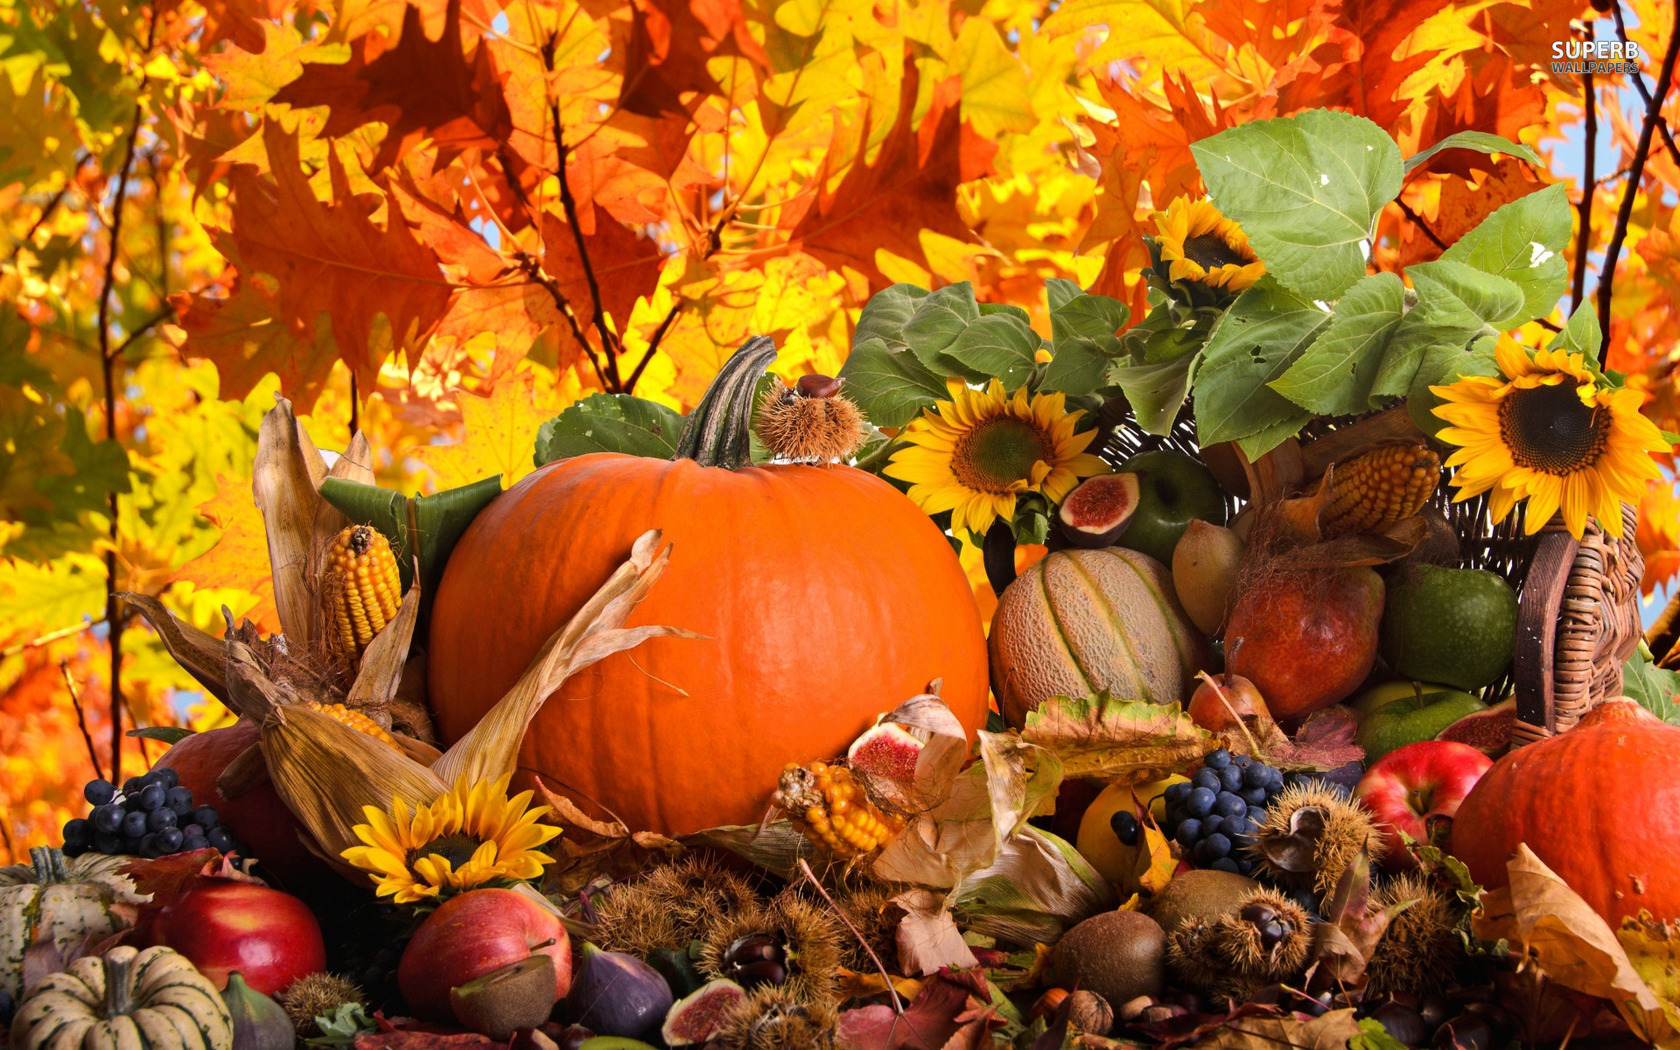 Autumn harvest wallpaper 1680x1050